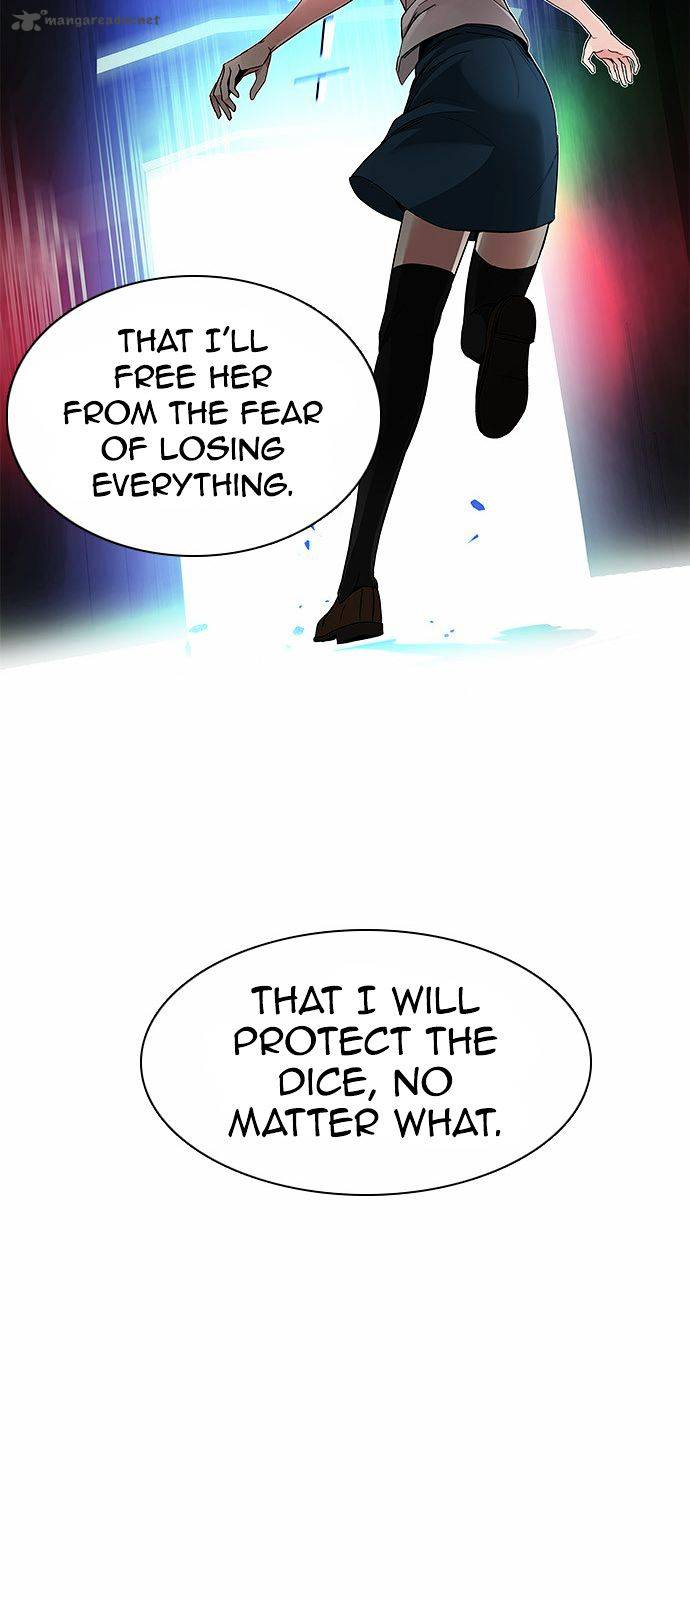 dice_the_cube_that_changes_everything_163_36